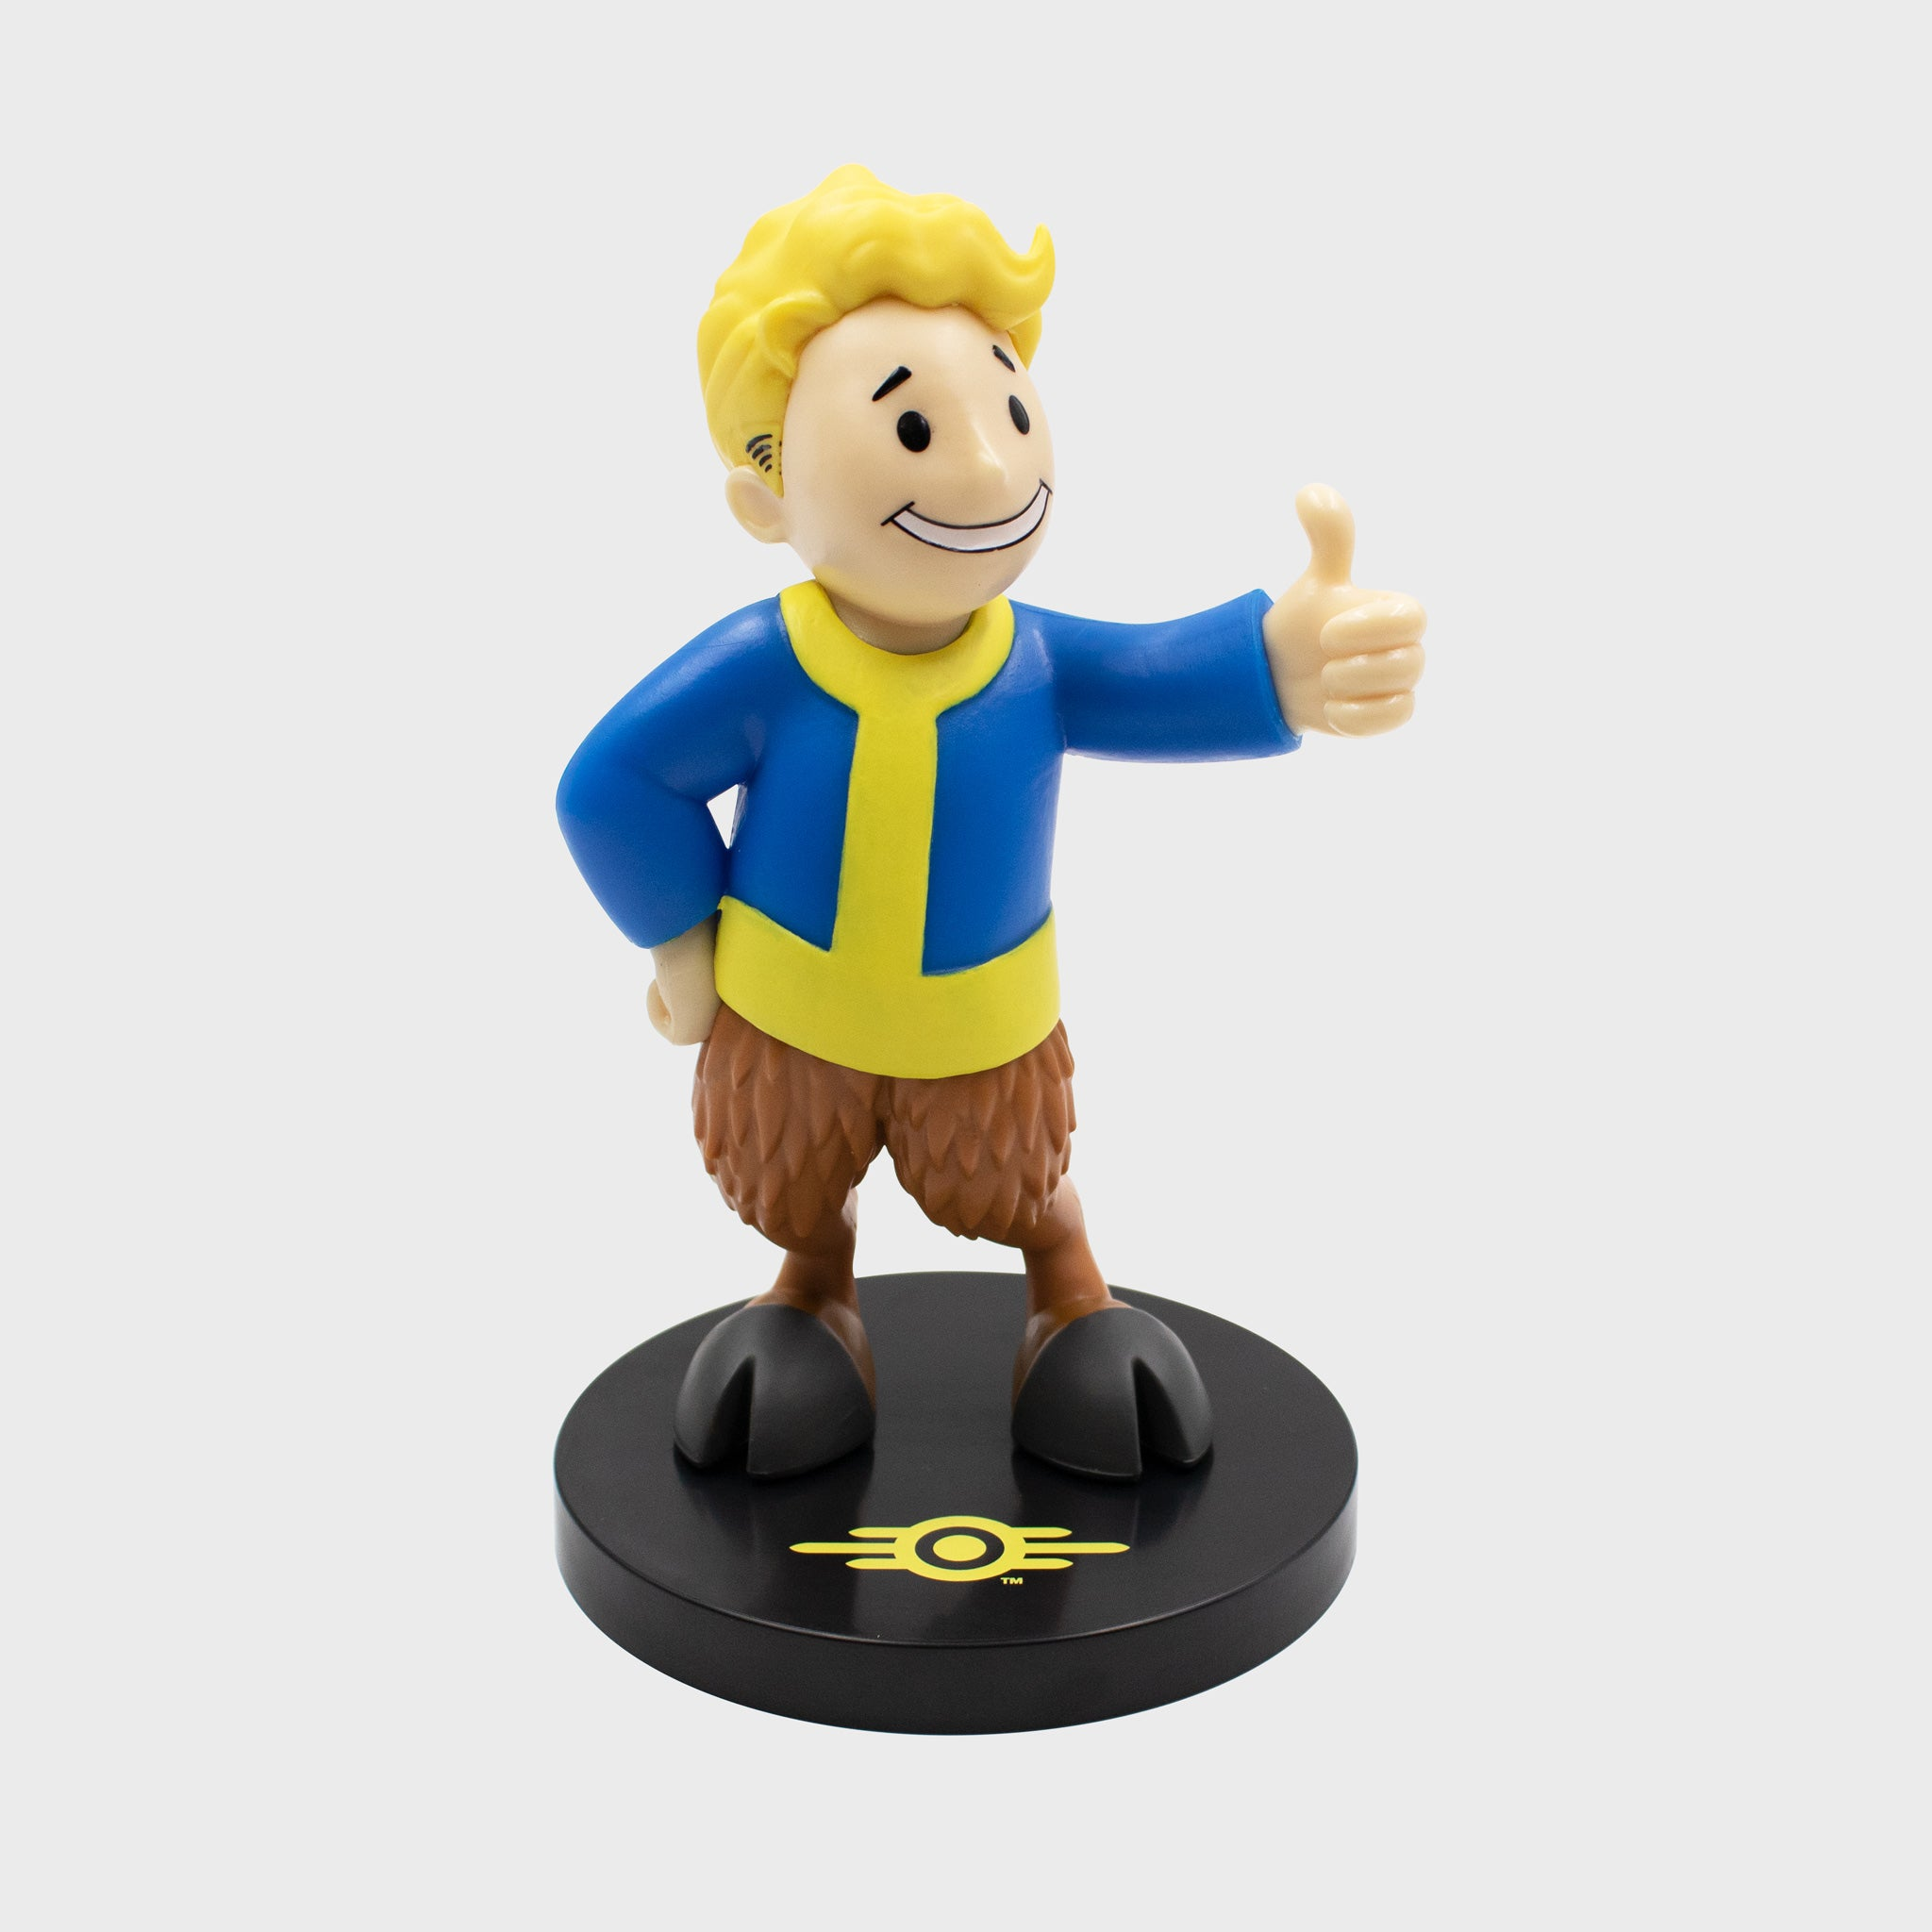 vault buy goat legs fallout vinyl figure culturefly collectible